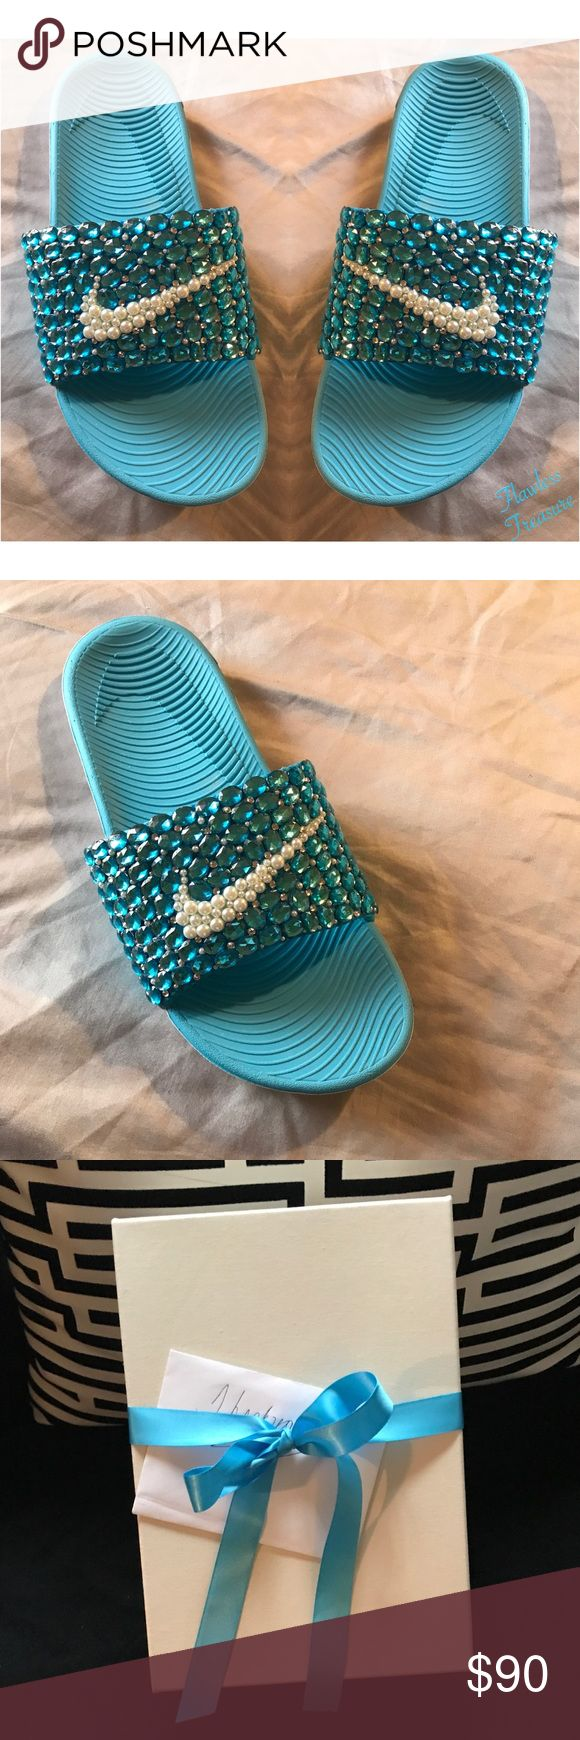 Customized Nike Slides made to order by~F.Treasure Iceberg customized Nike slides By Flawless Treasure, made to order slides come in a variety of styles & colors you may even choose your own colors, they are high demand on my online store & come on all sizes from kids to adults, these particular pair are known as our Iceberg Slides they give a icy look & the glistening is sexy! All products come gift boxed ~Flawless Treasure Nike Shoes Sandals